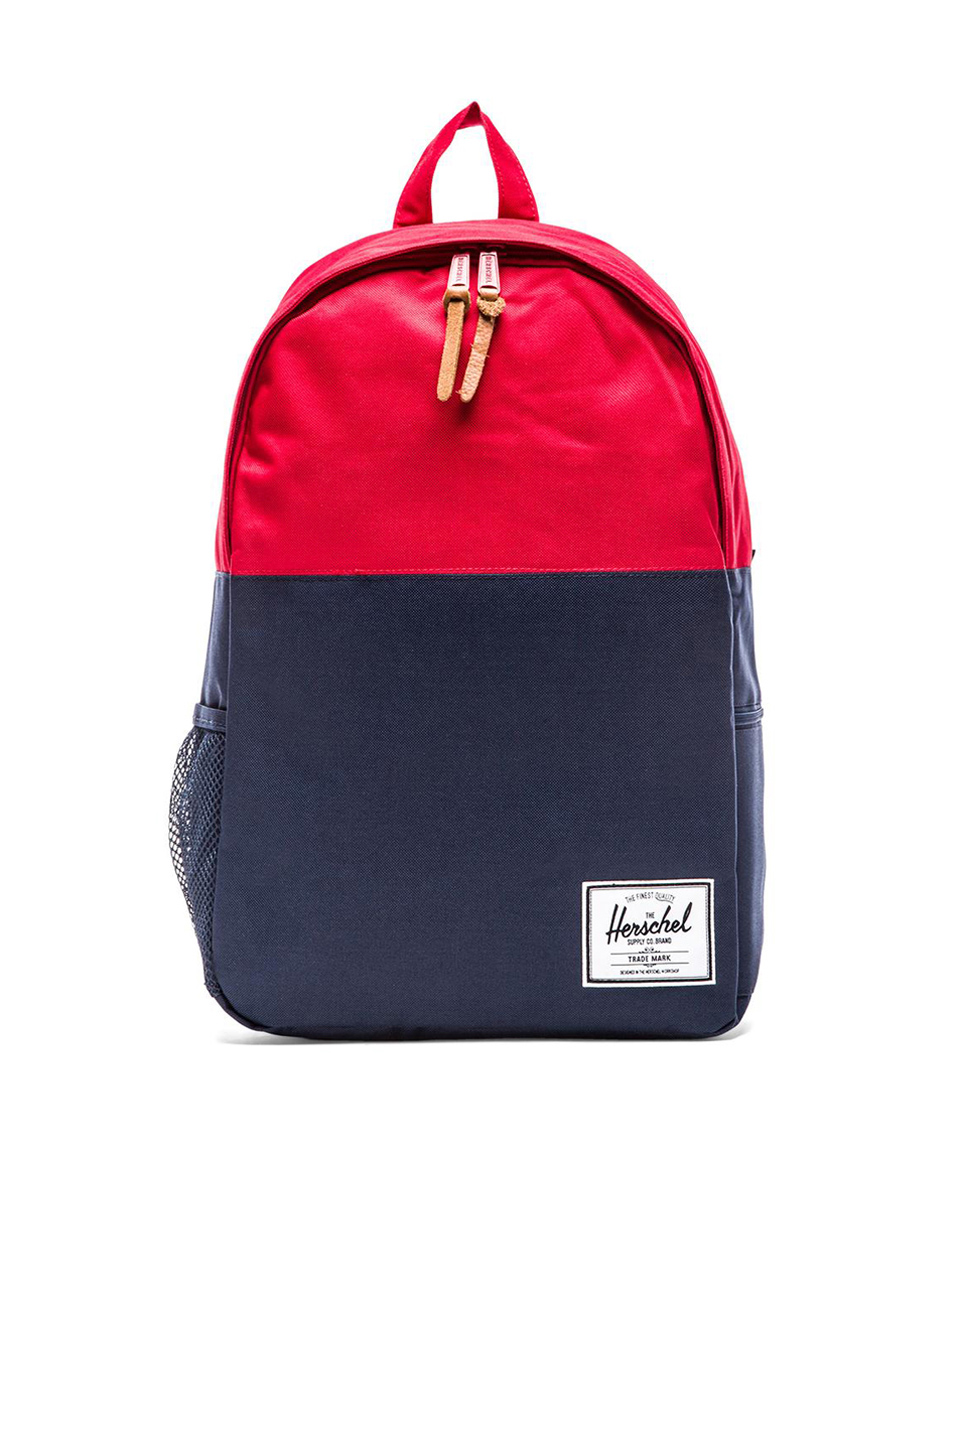 Herschel Supply Jasper Back Pack $50